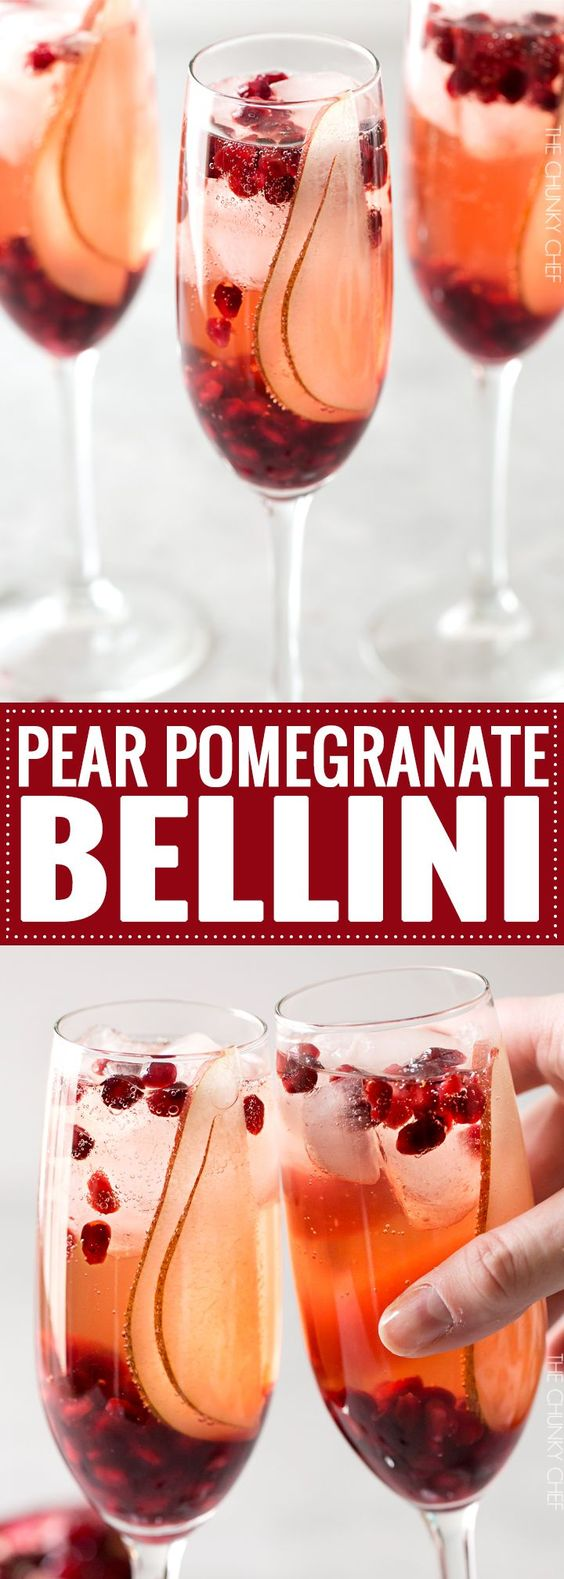 POMEGRANATE BELLINI